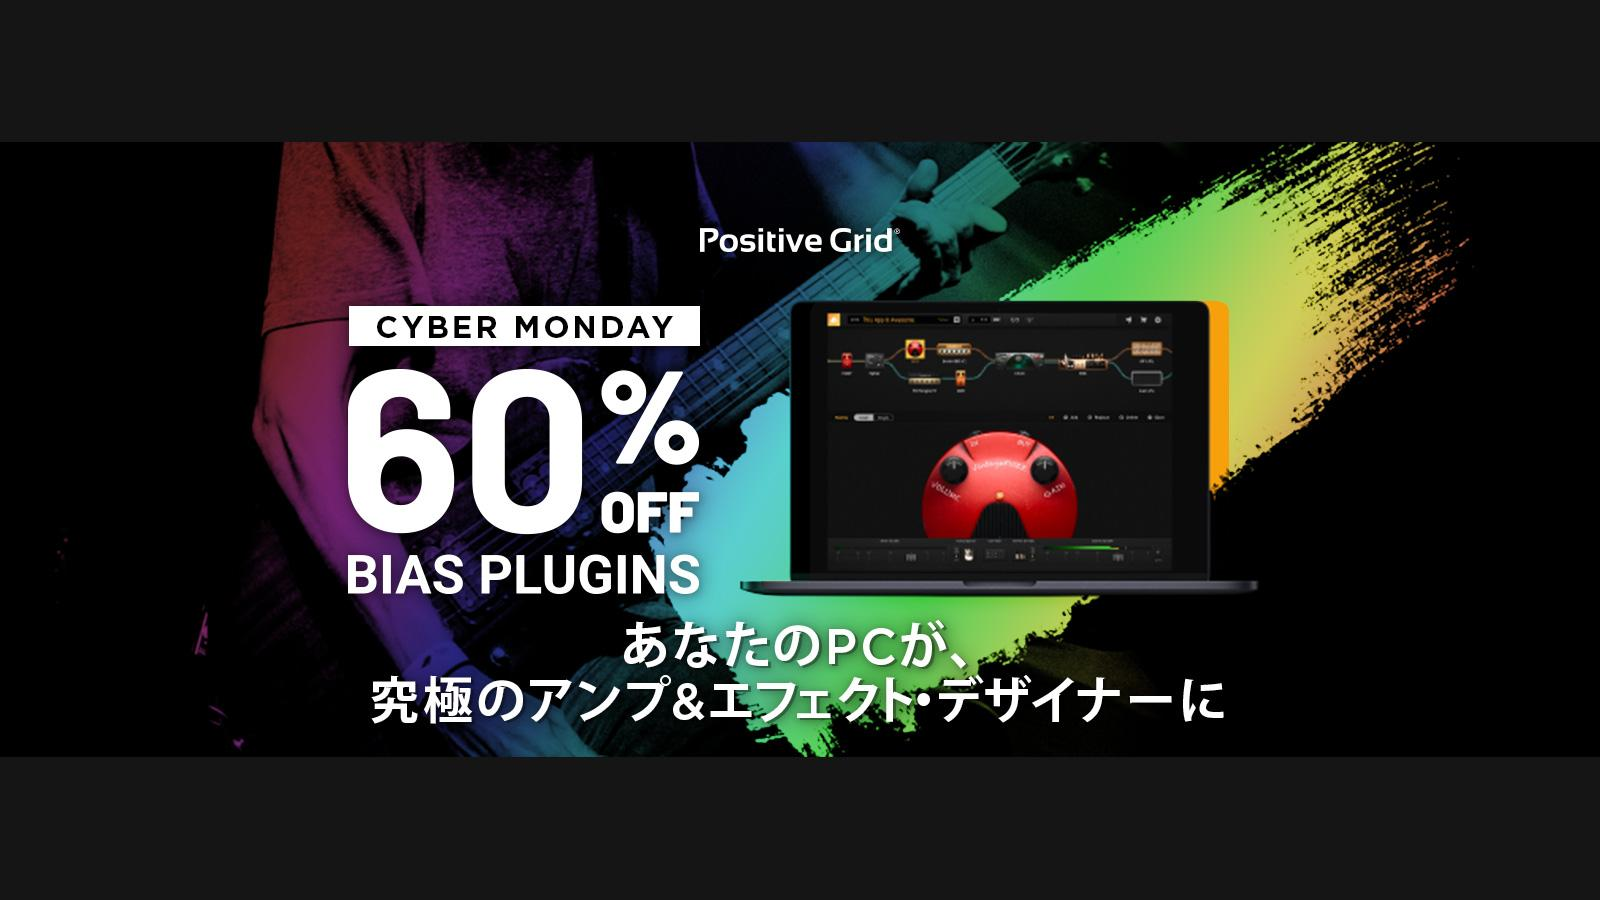 Positive Grid Cyber Monday Software Promotion